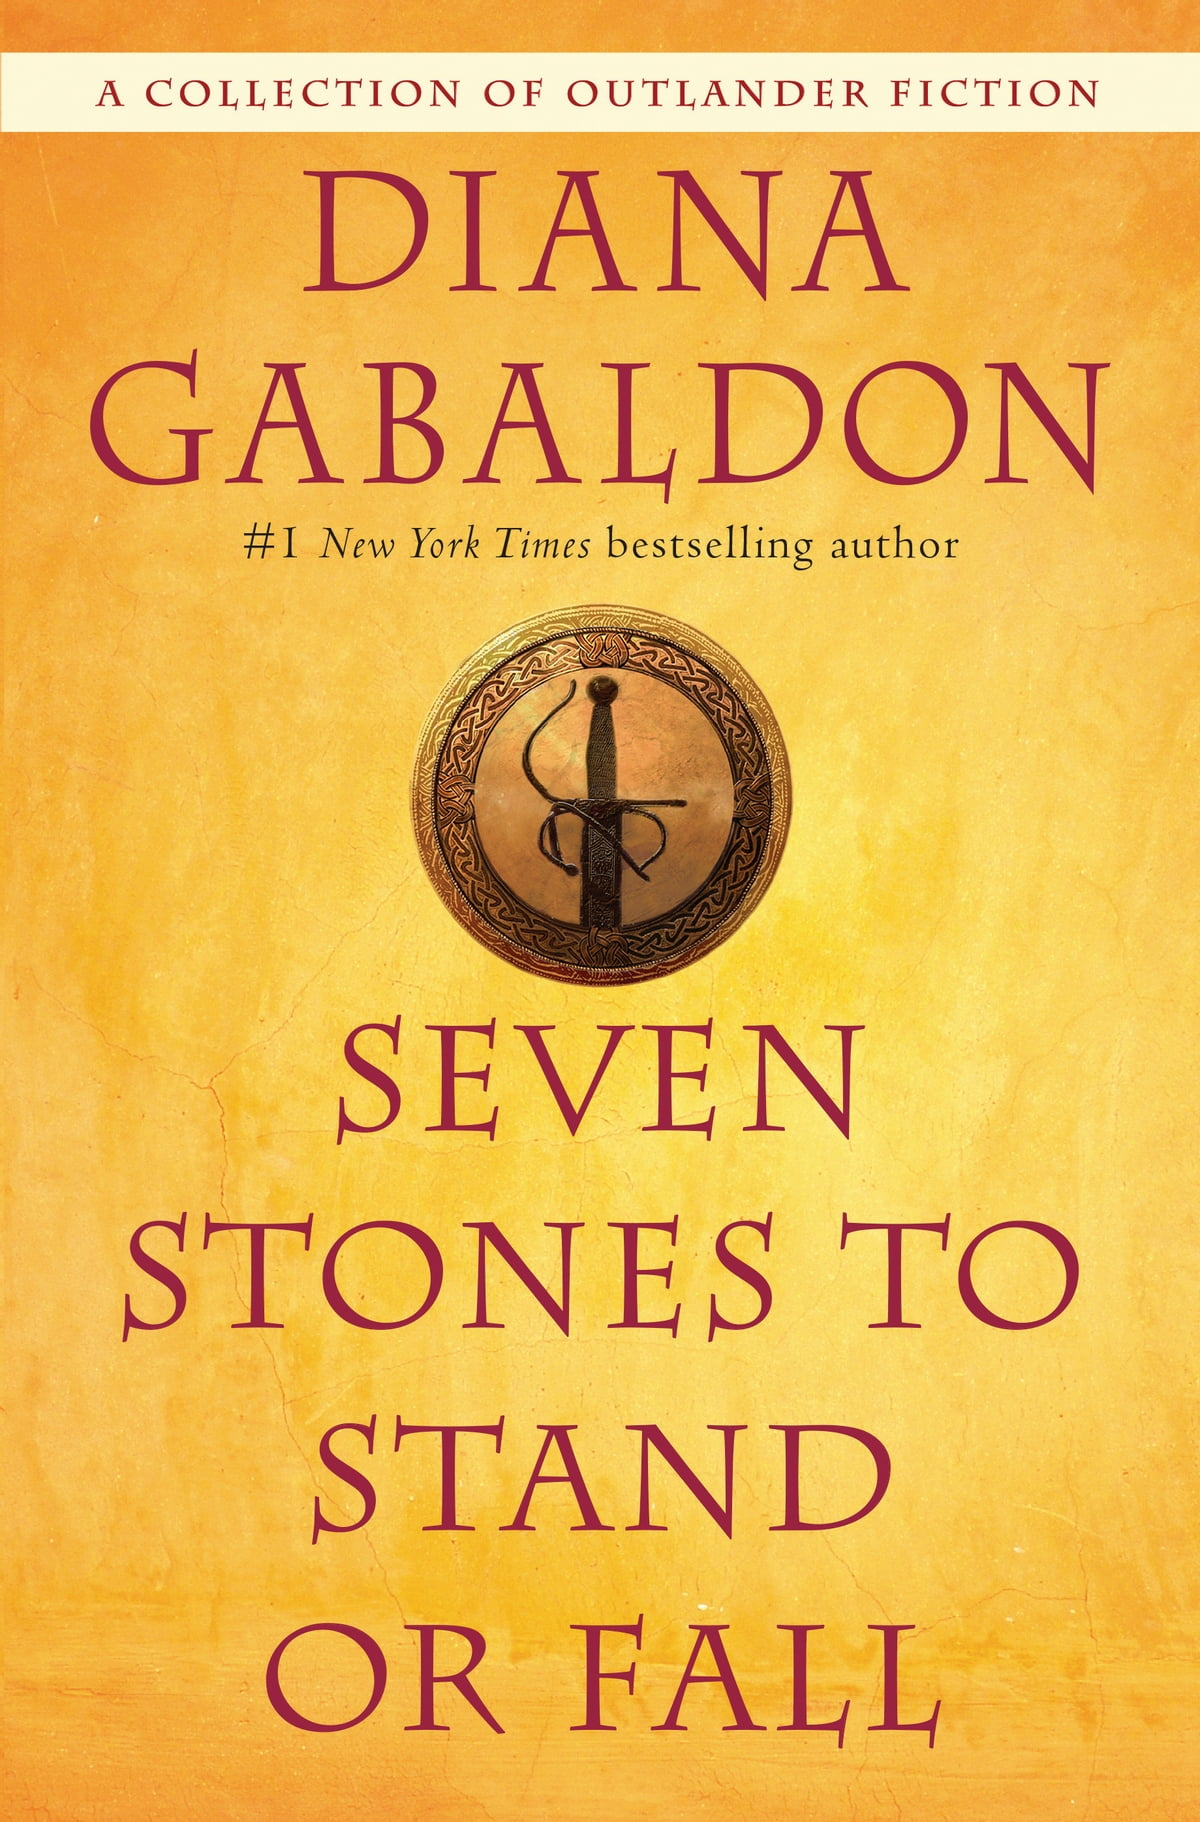 Seven Stones to Stand or Fall eBook by Diana Gabaldon - 9780385689564 |  Rakuten Kobo